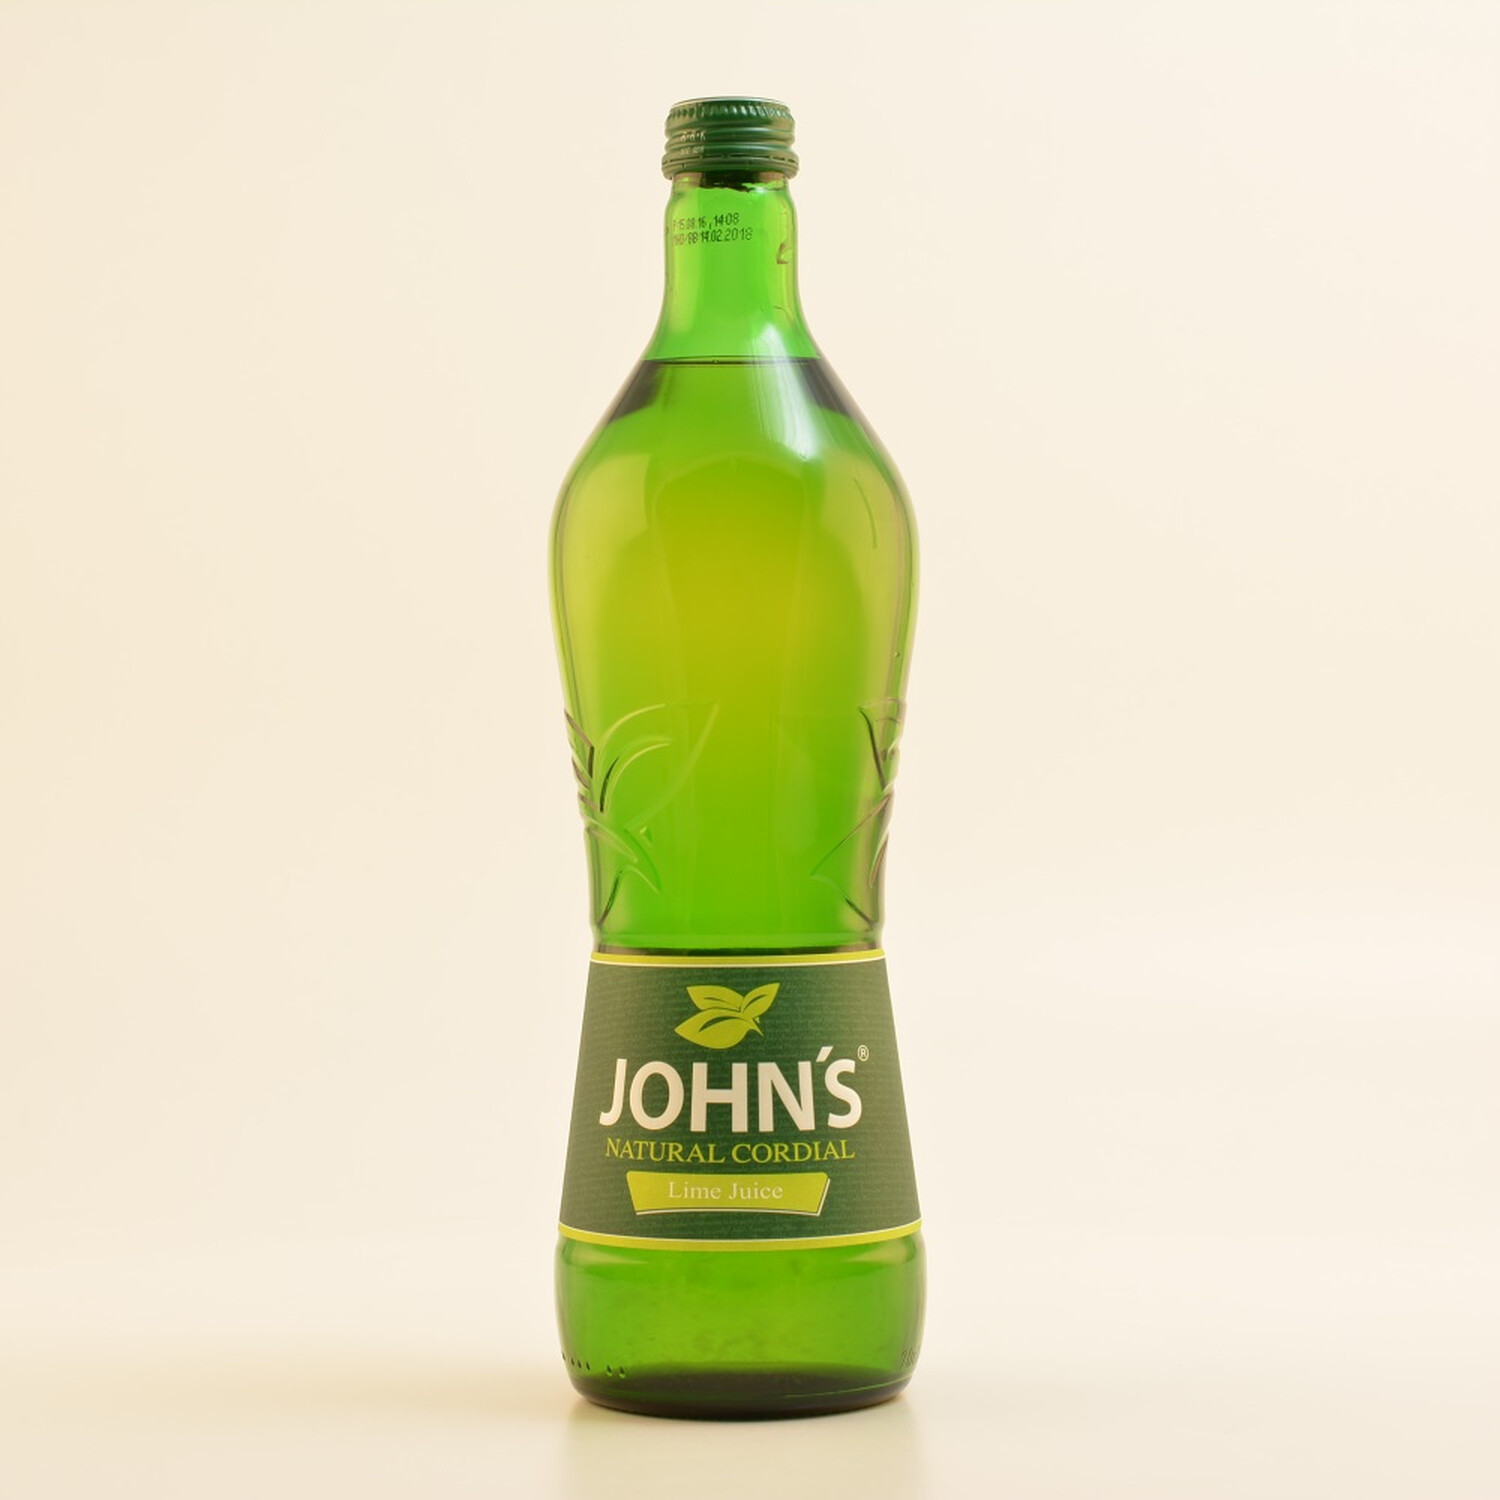 Johns Natural Cordial Lime Juice Kein Alkohol 07l 299